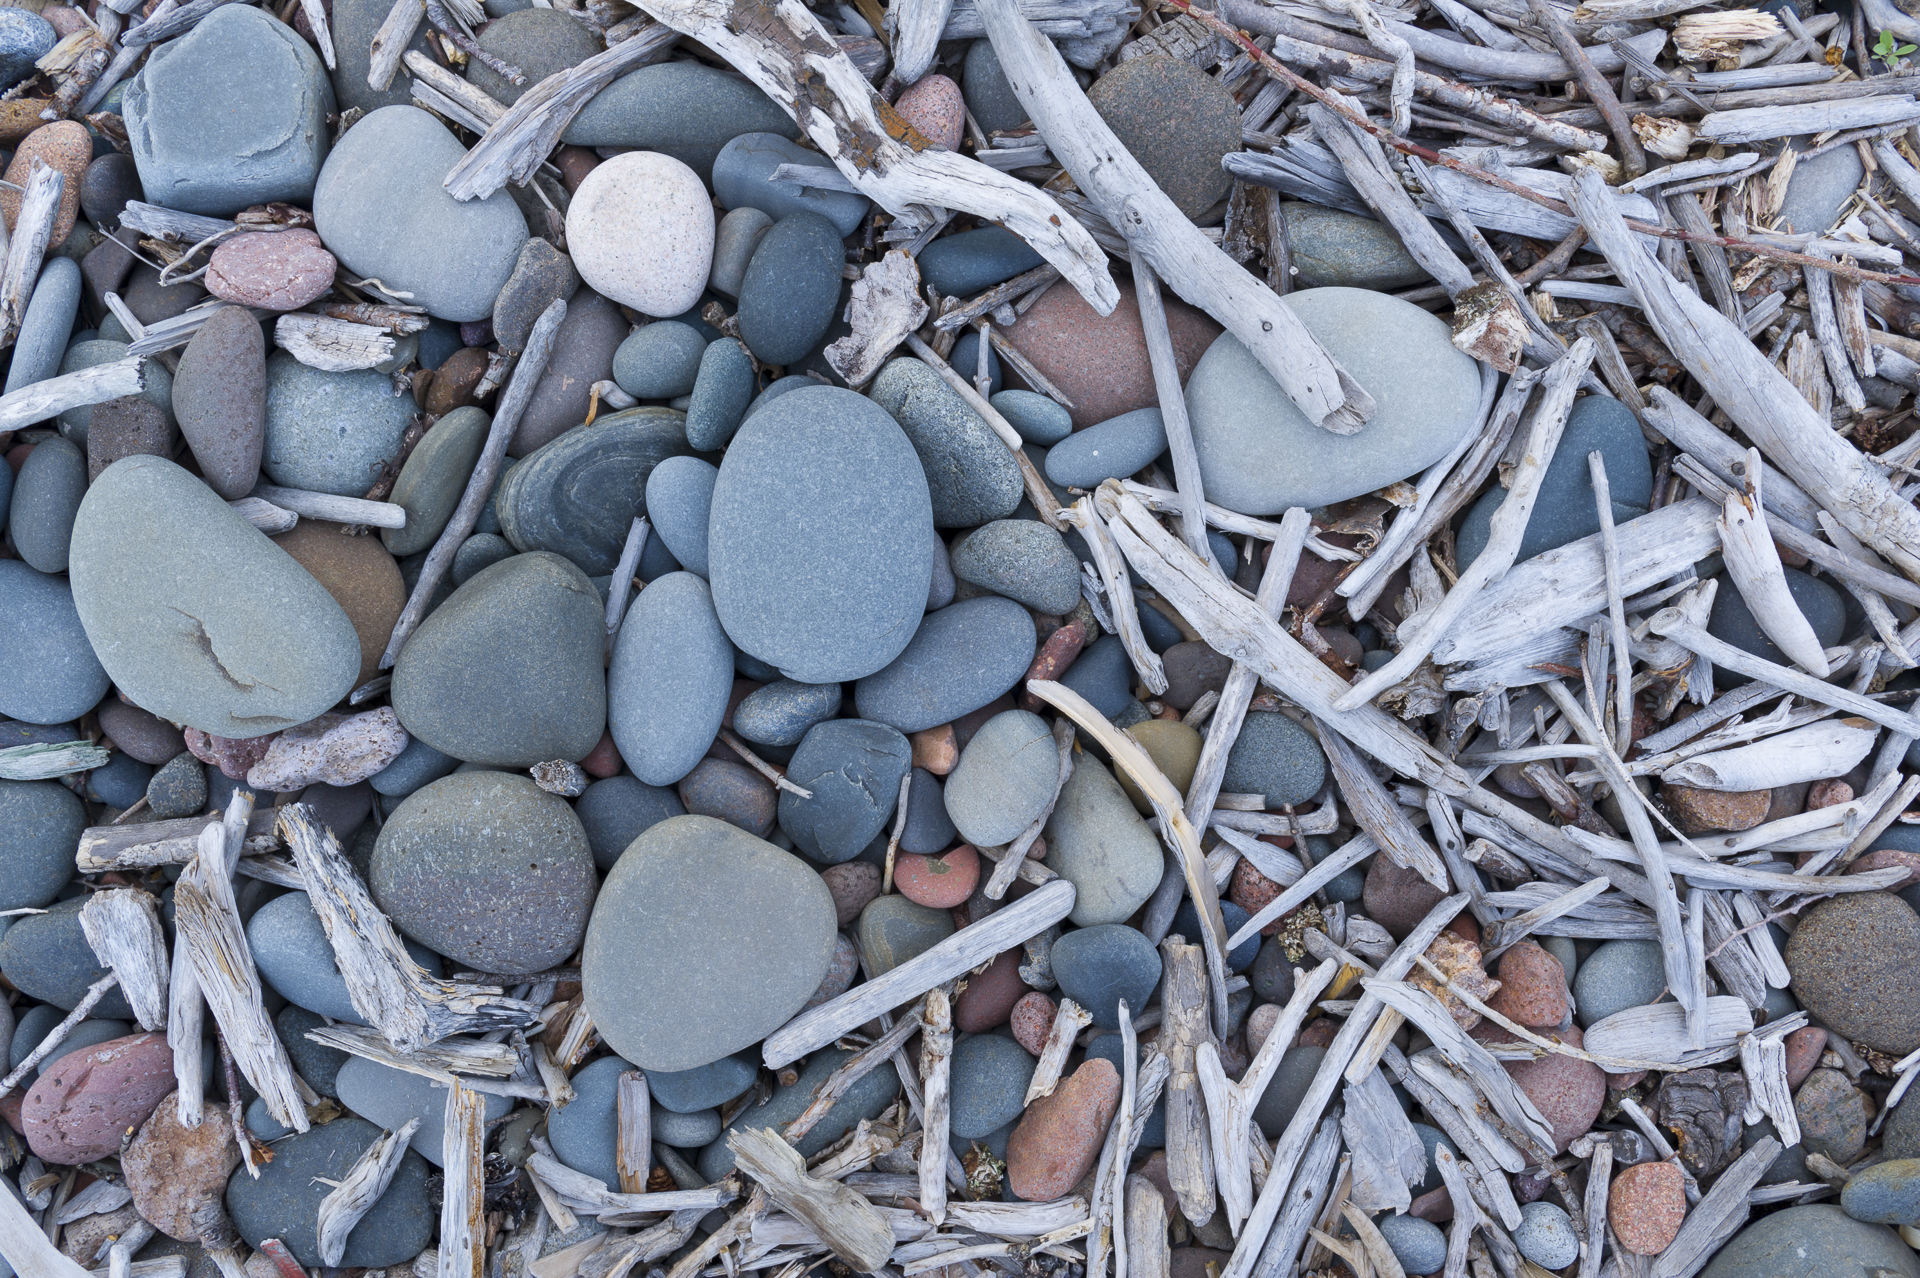 Beach pebbles and driftwood: Cook County, MN